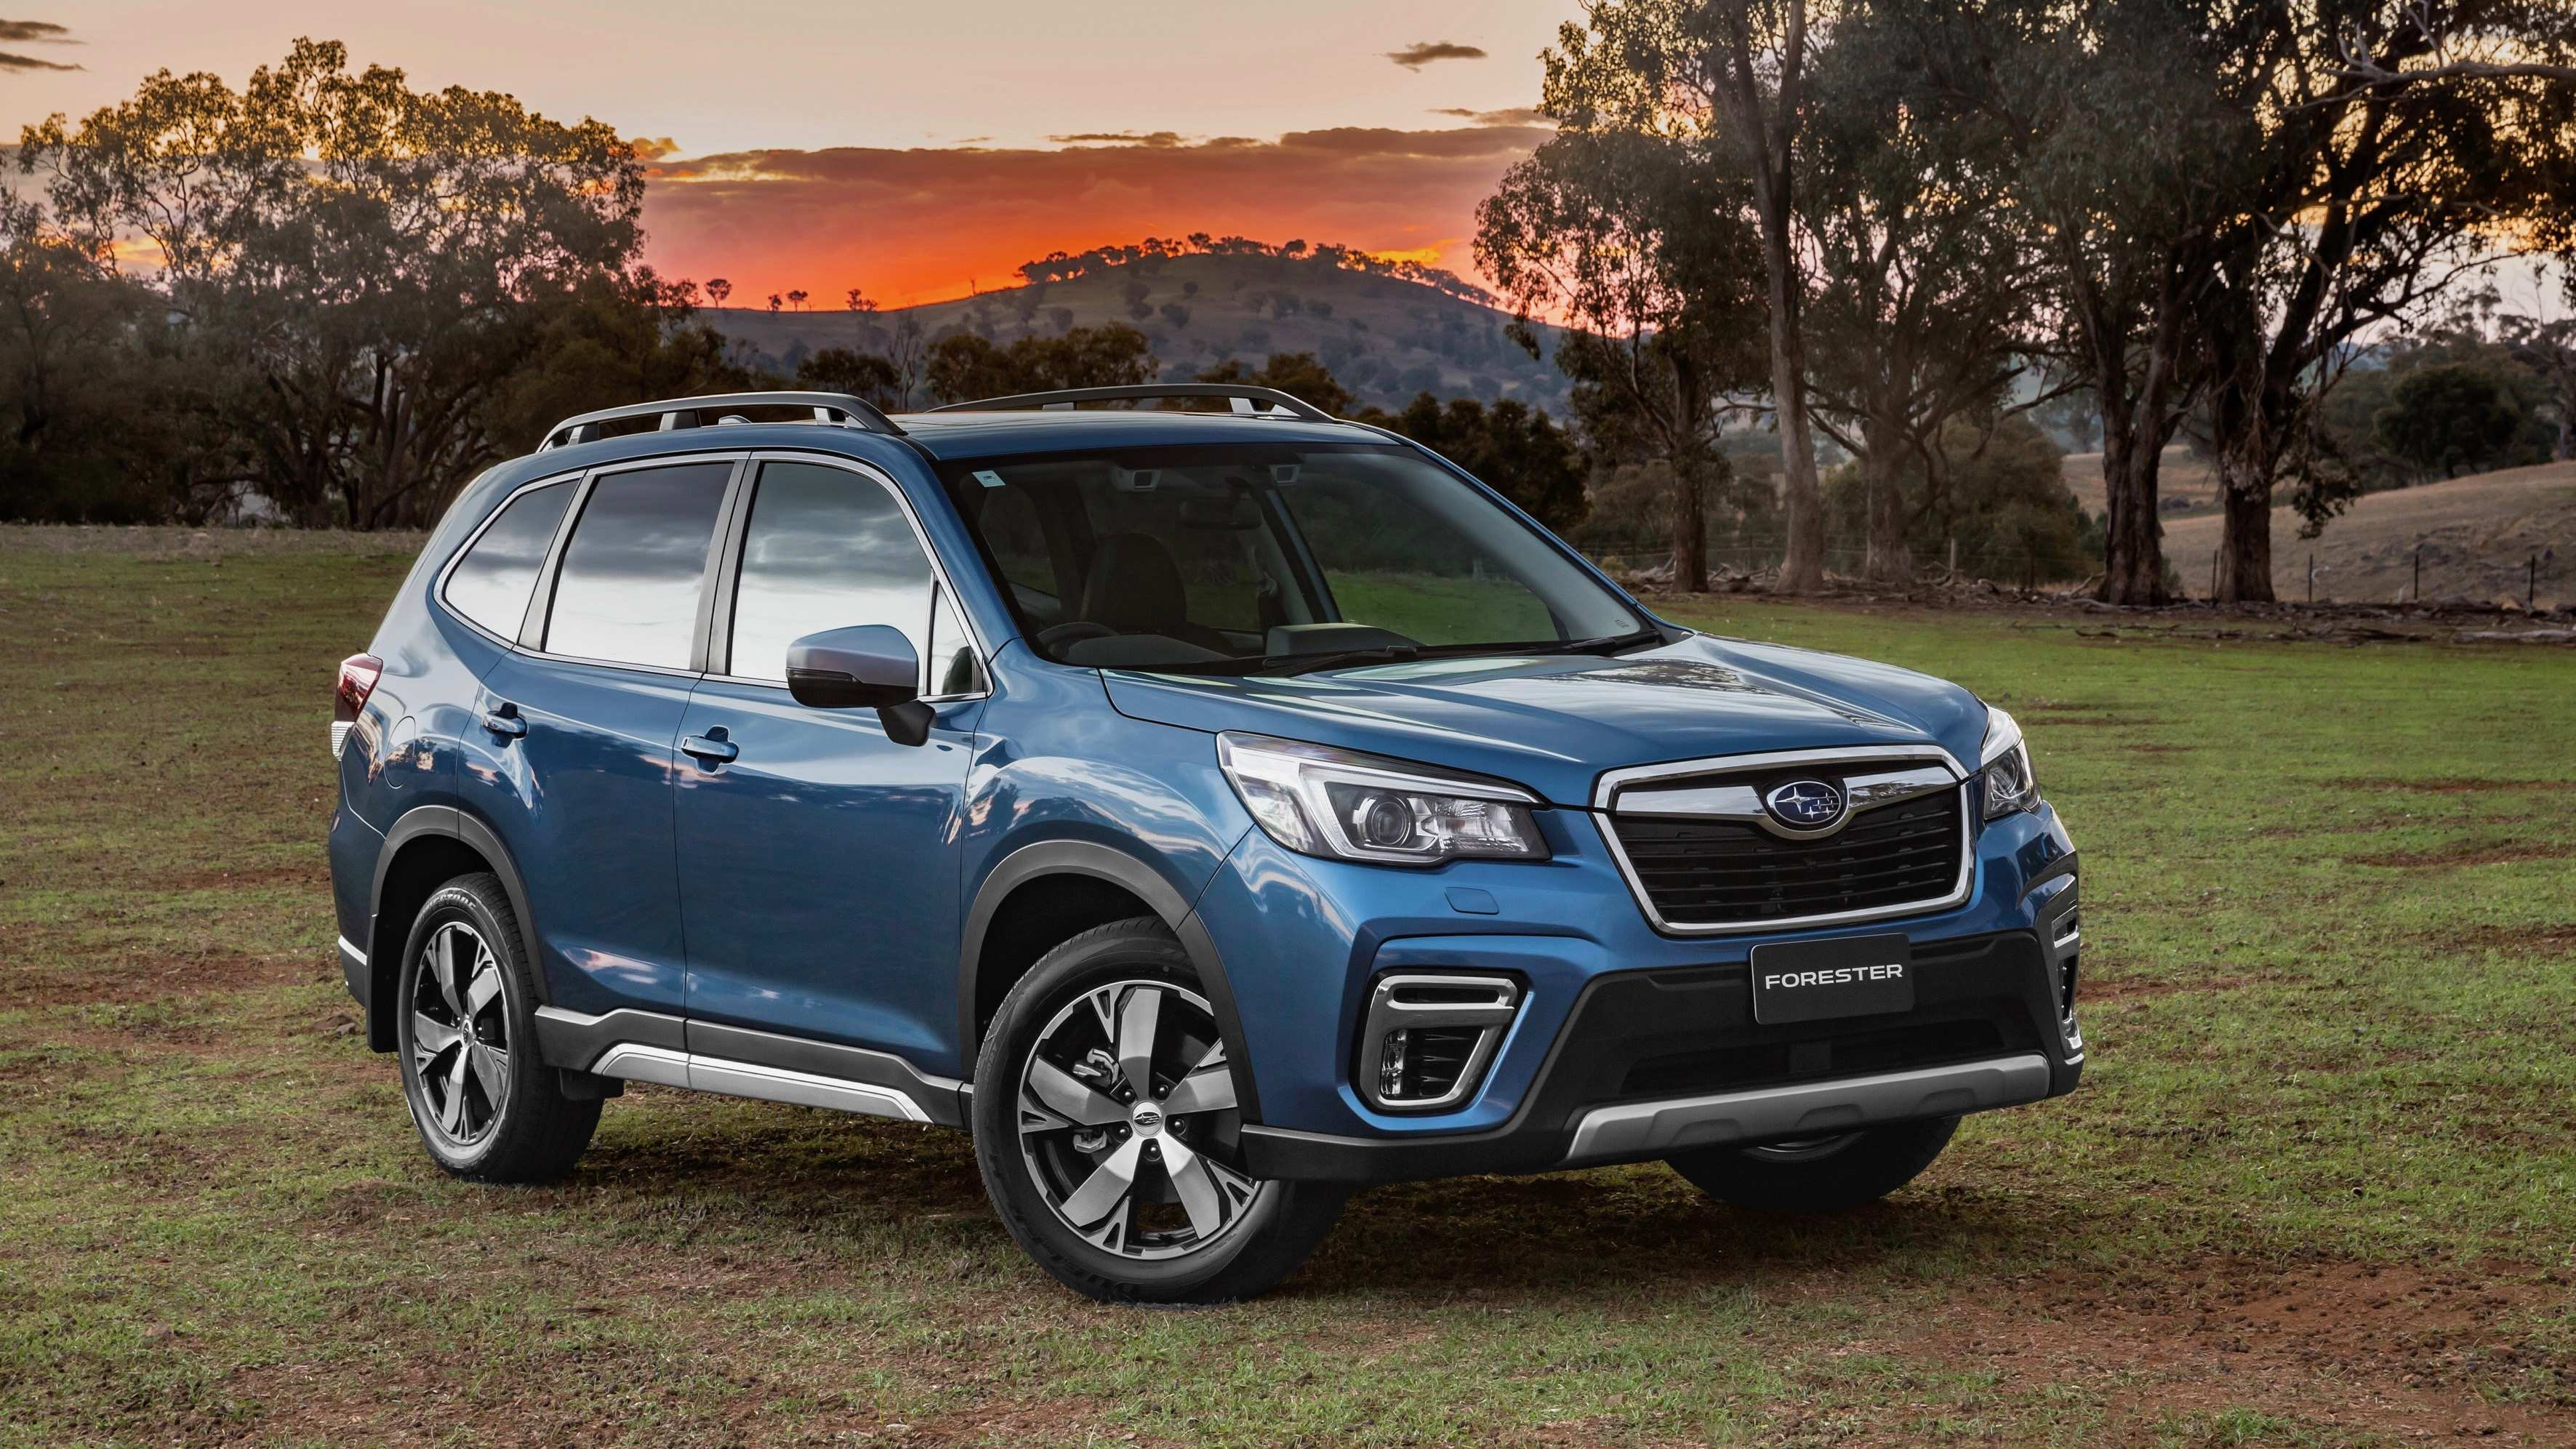 76 The New Subaru Forester 2019 Usa New Review Wallpaper for New Subaru Forester 2019 Usa New Review